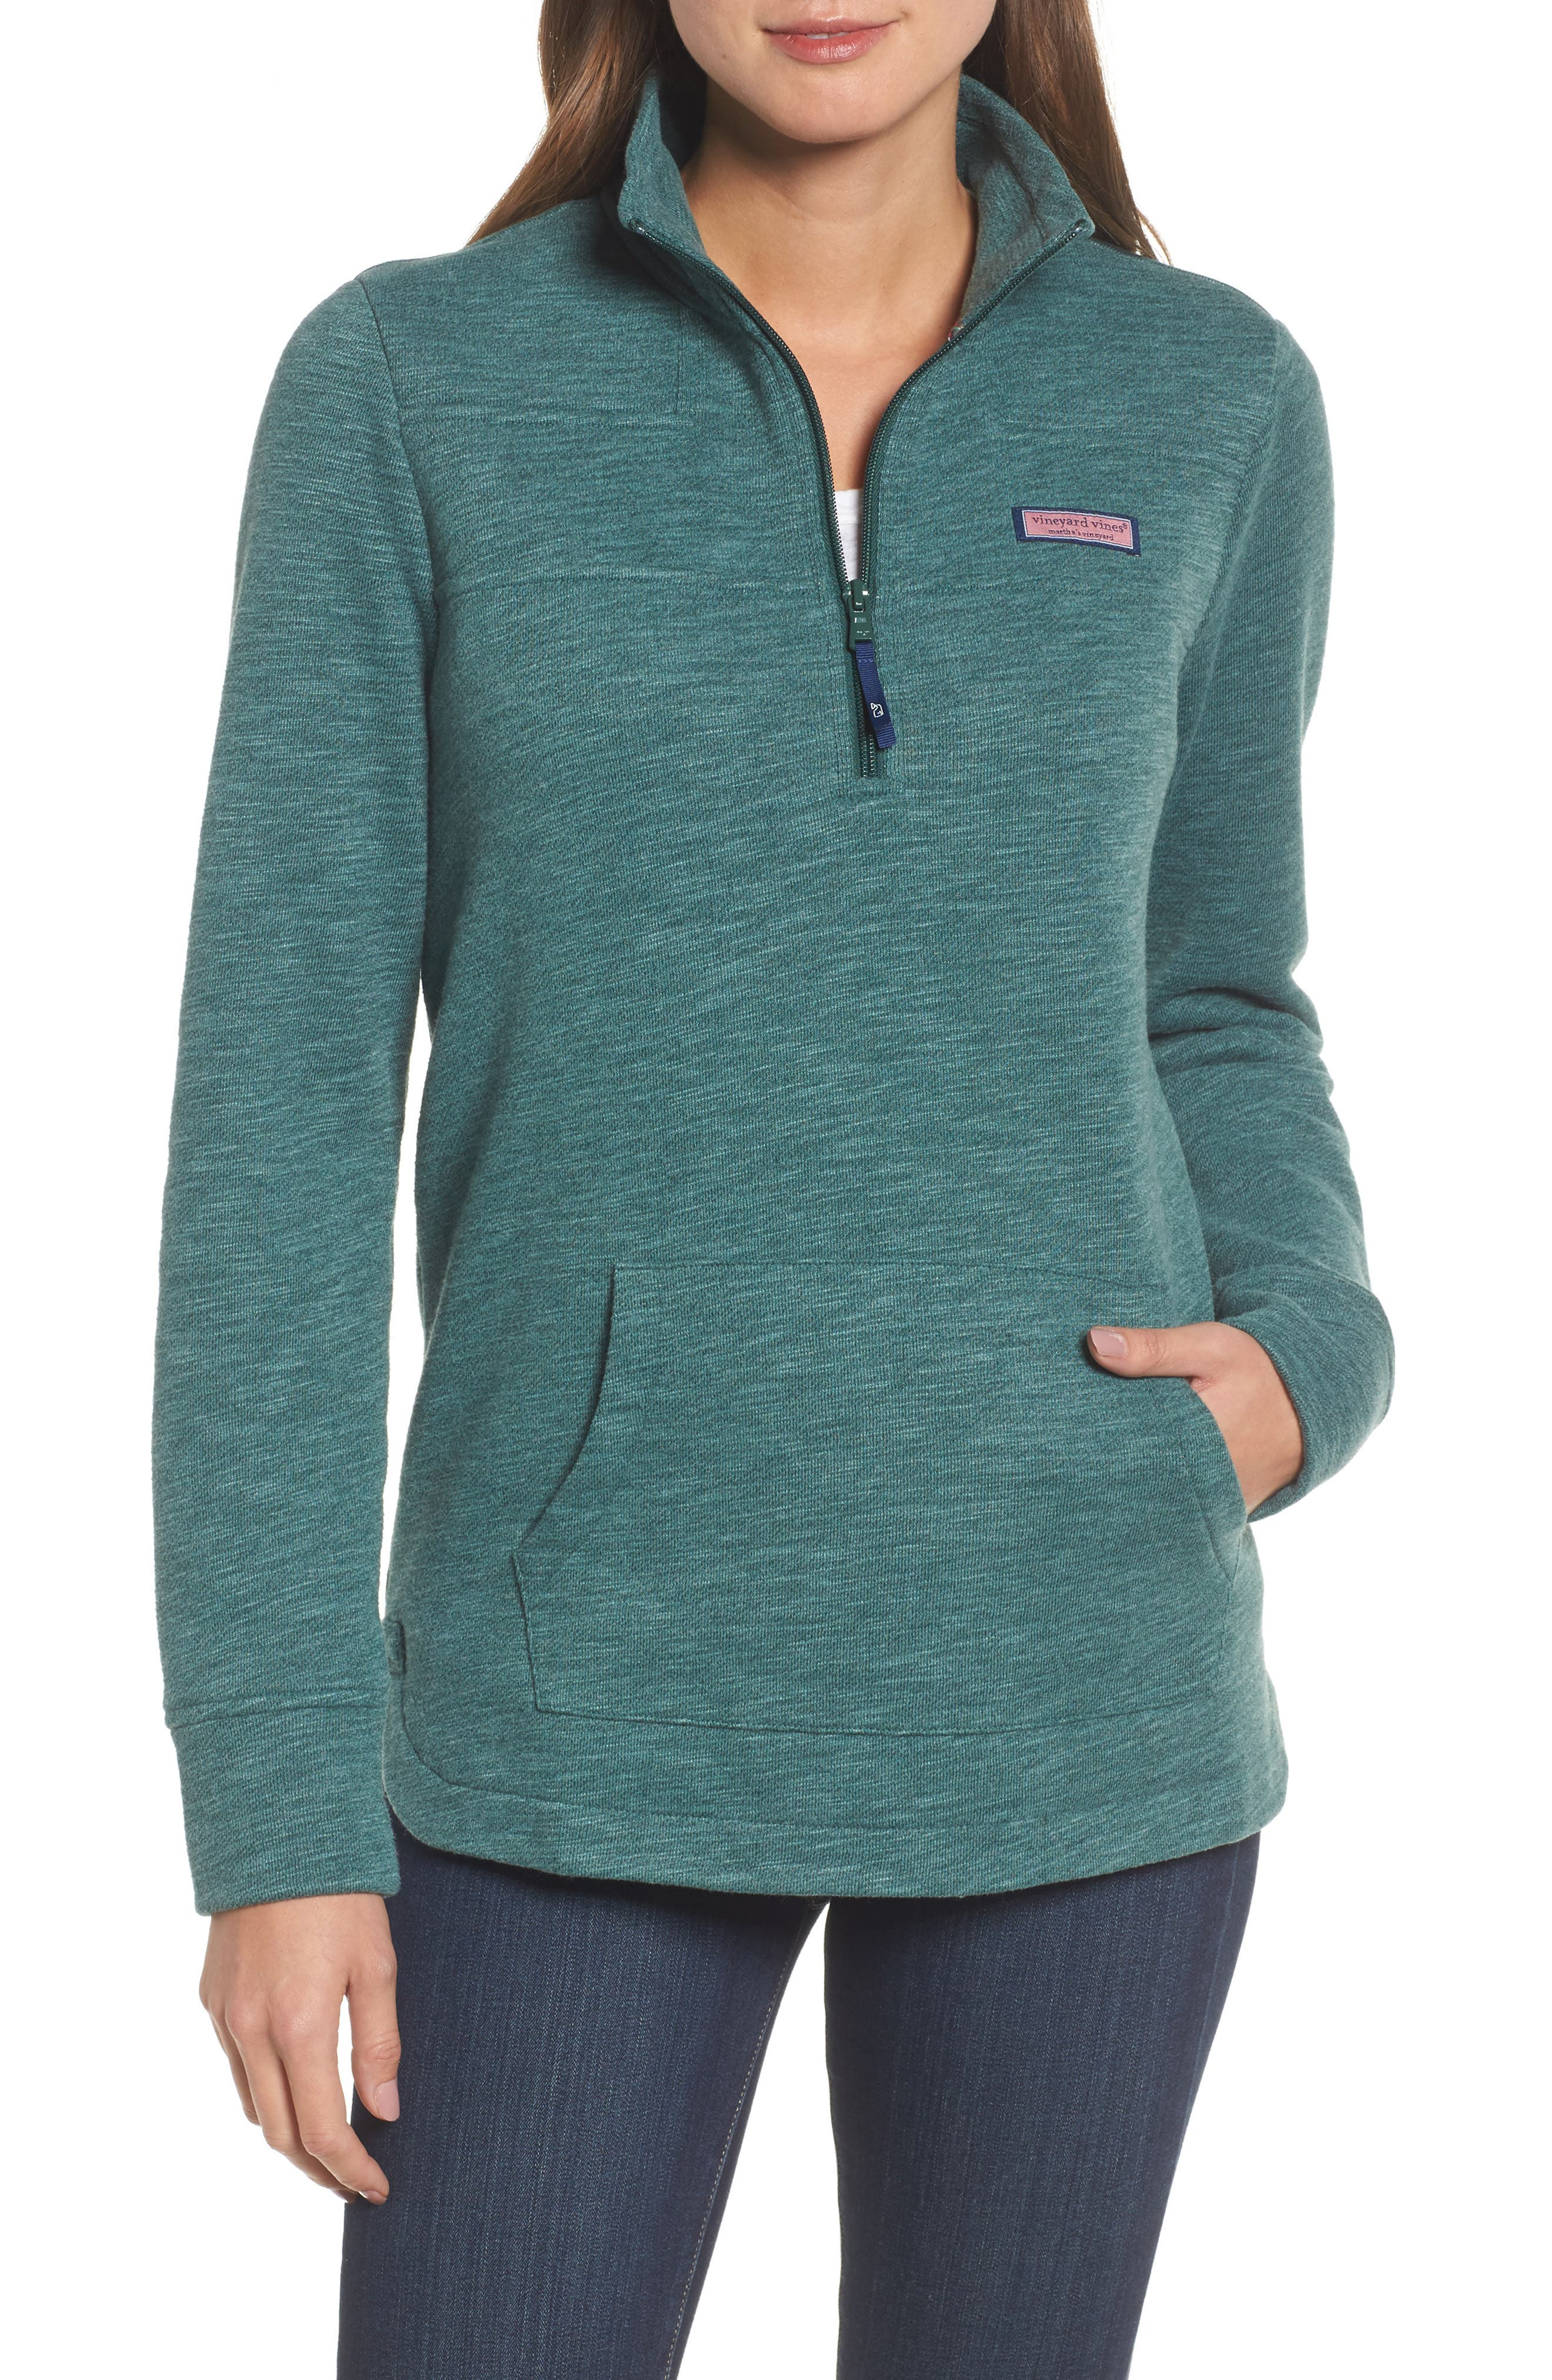 vineyard vines Relaxed Holiday Heather Shep Top